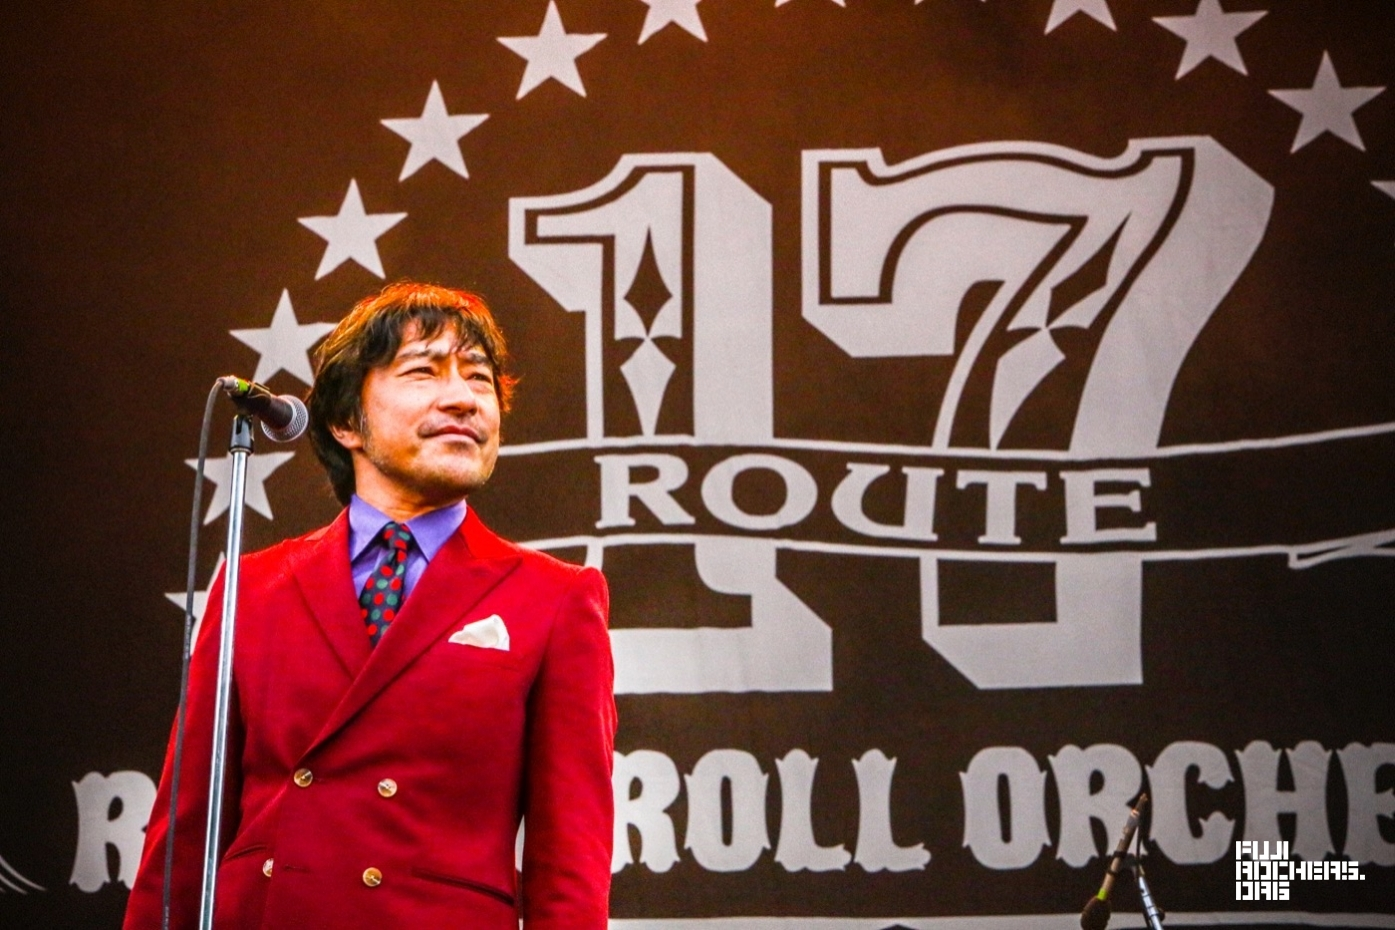 """ROUTE 17 Rock'n'Roll ORCHESTRA (feat. 加山雄三、ELVIN BISHOP、仲井戸""""CHABO""""麗市、トータス松本)"""